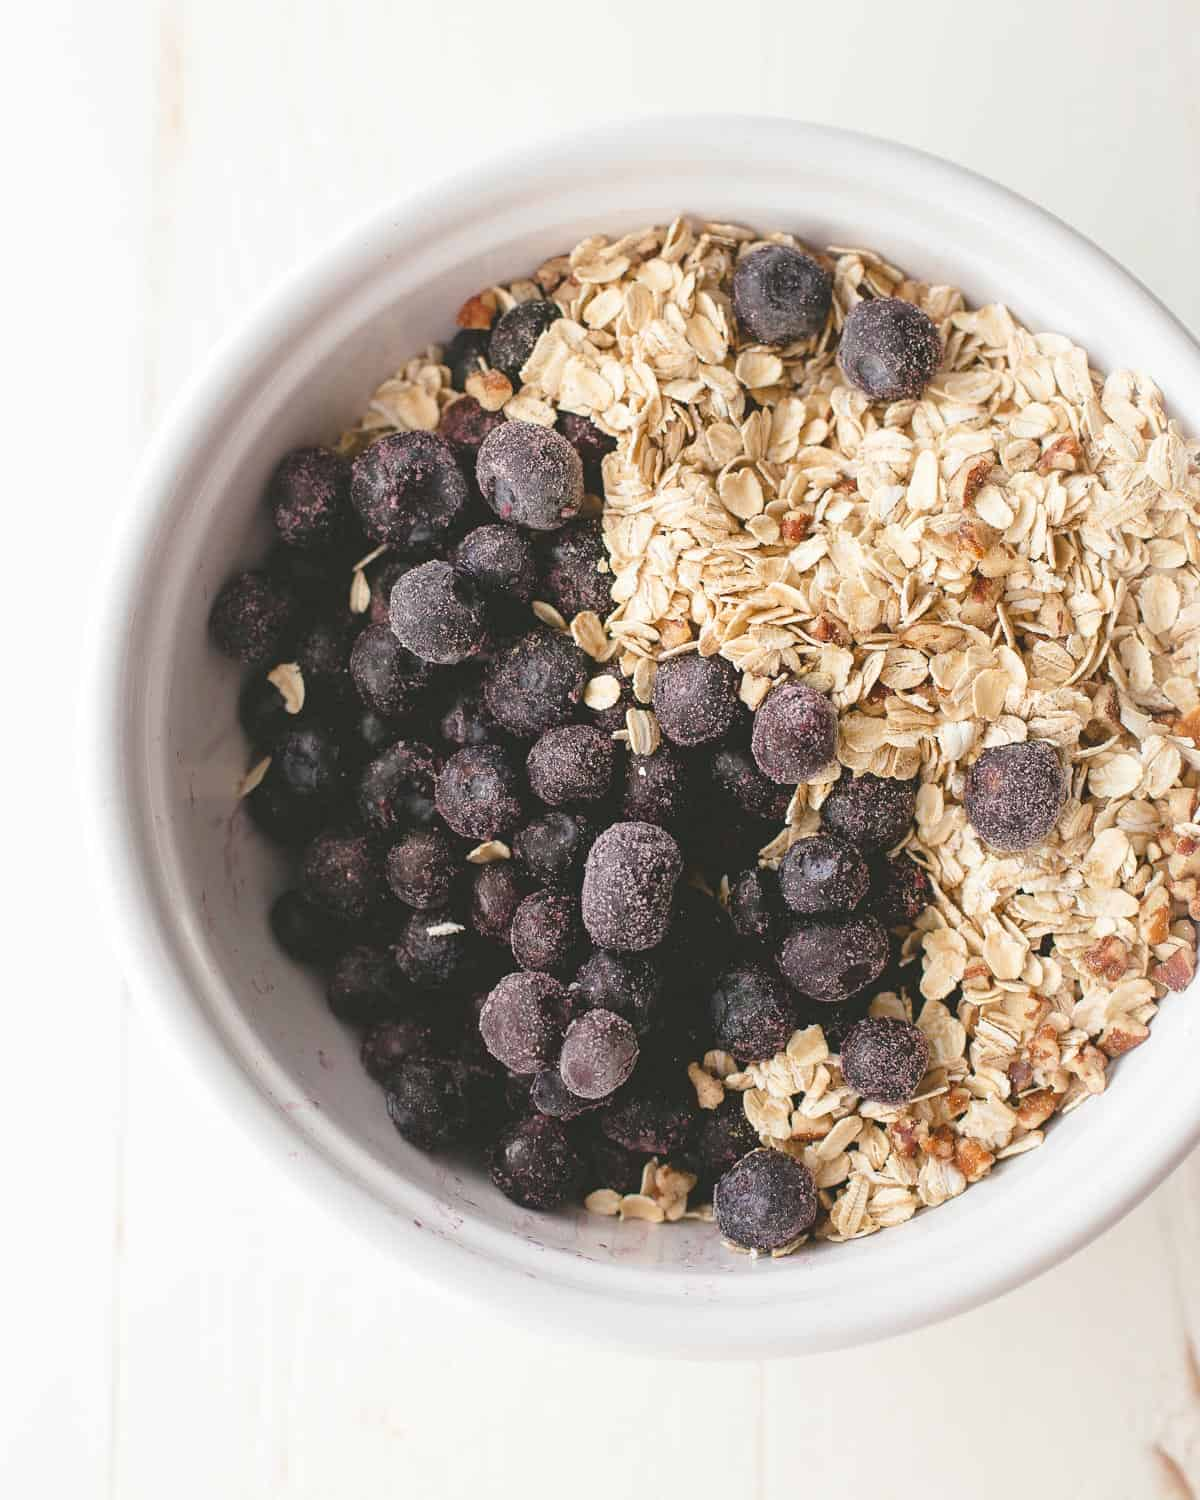 ingredients for blueberry oatmeal in a white bowl